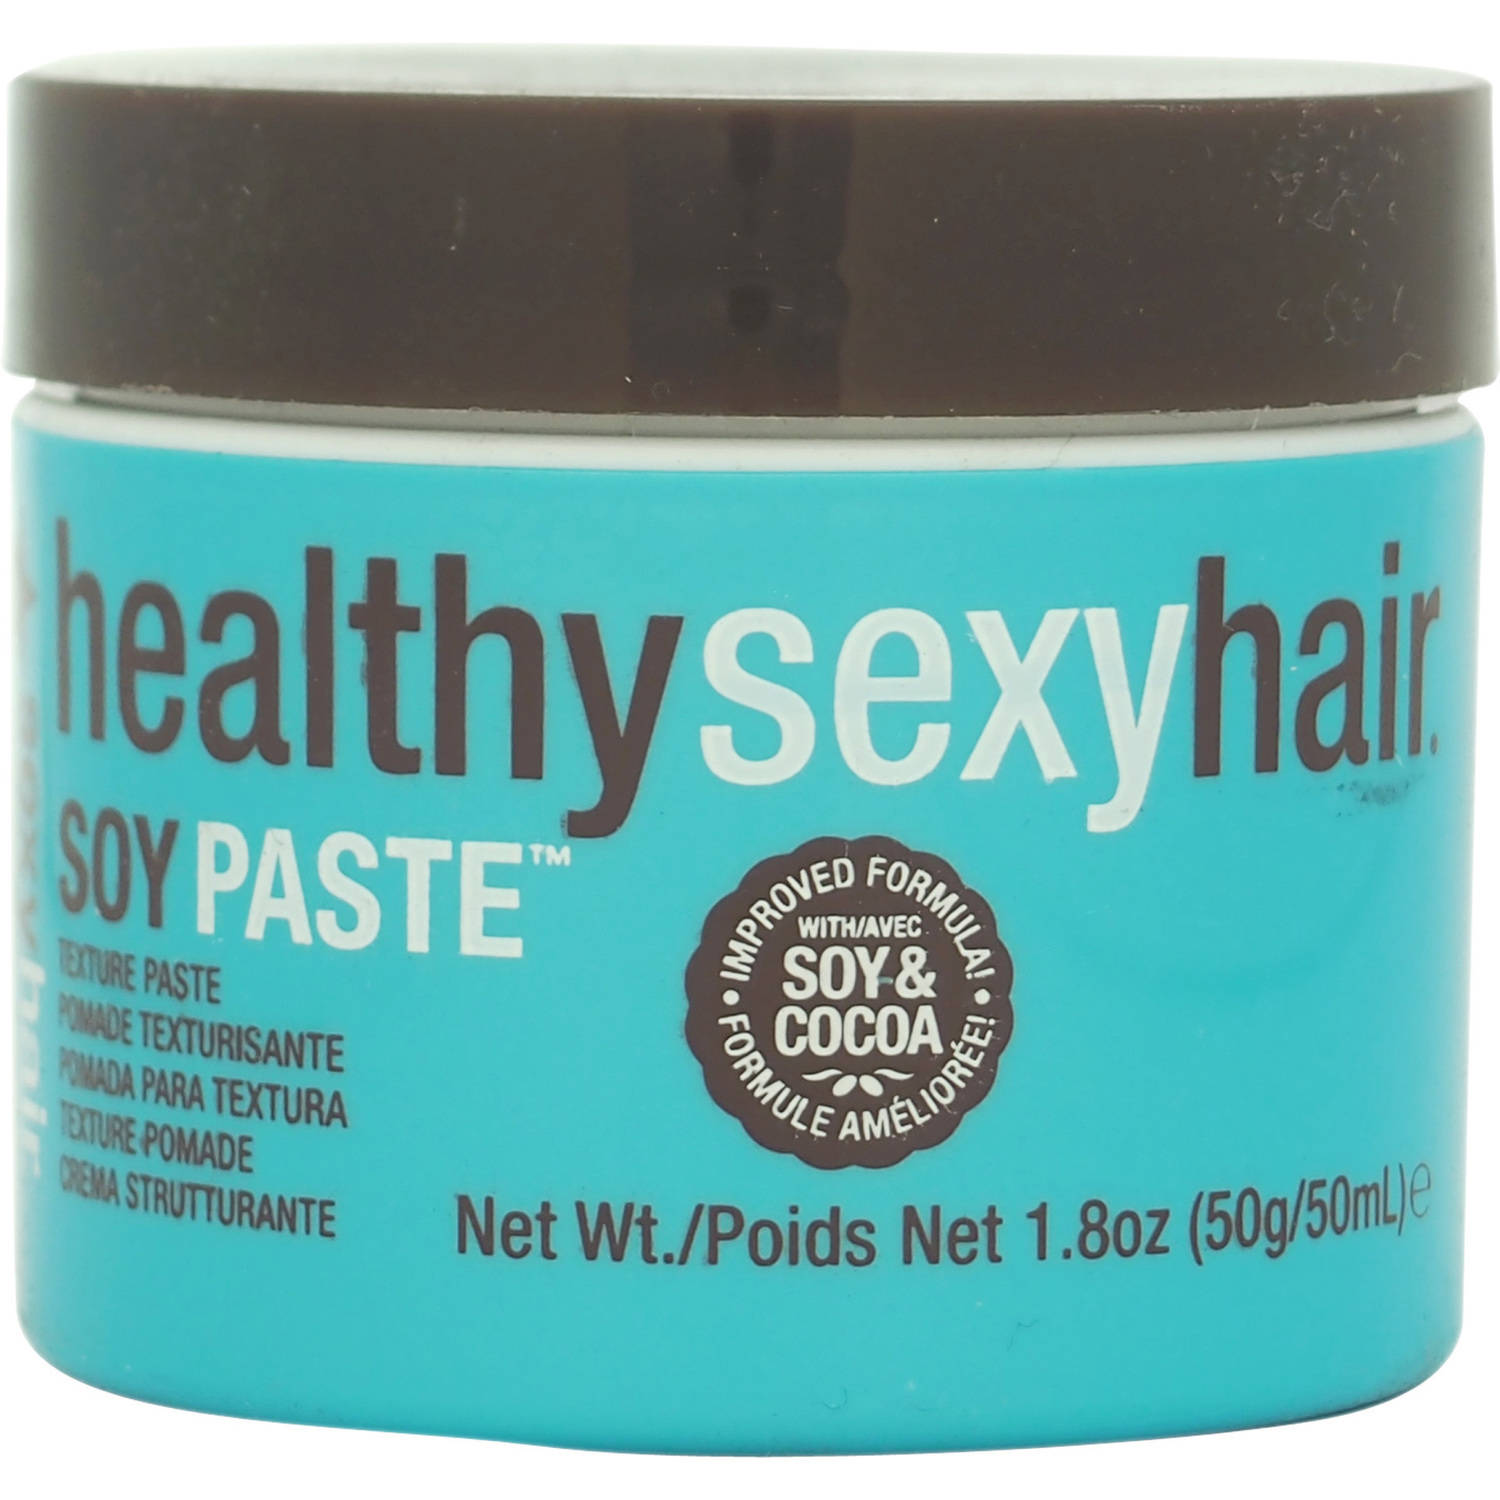 Healthy Sexy Hair Soy & Cocoa Paste by Sexy Hair for Unisex, 1.8 oz